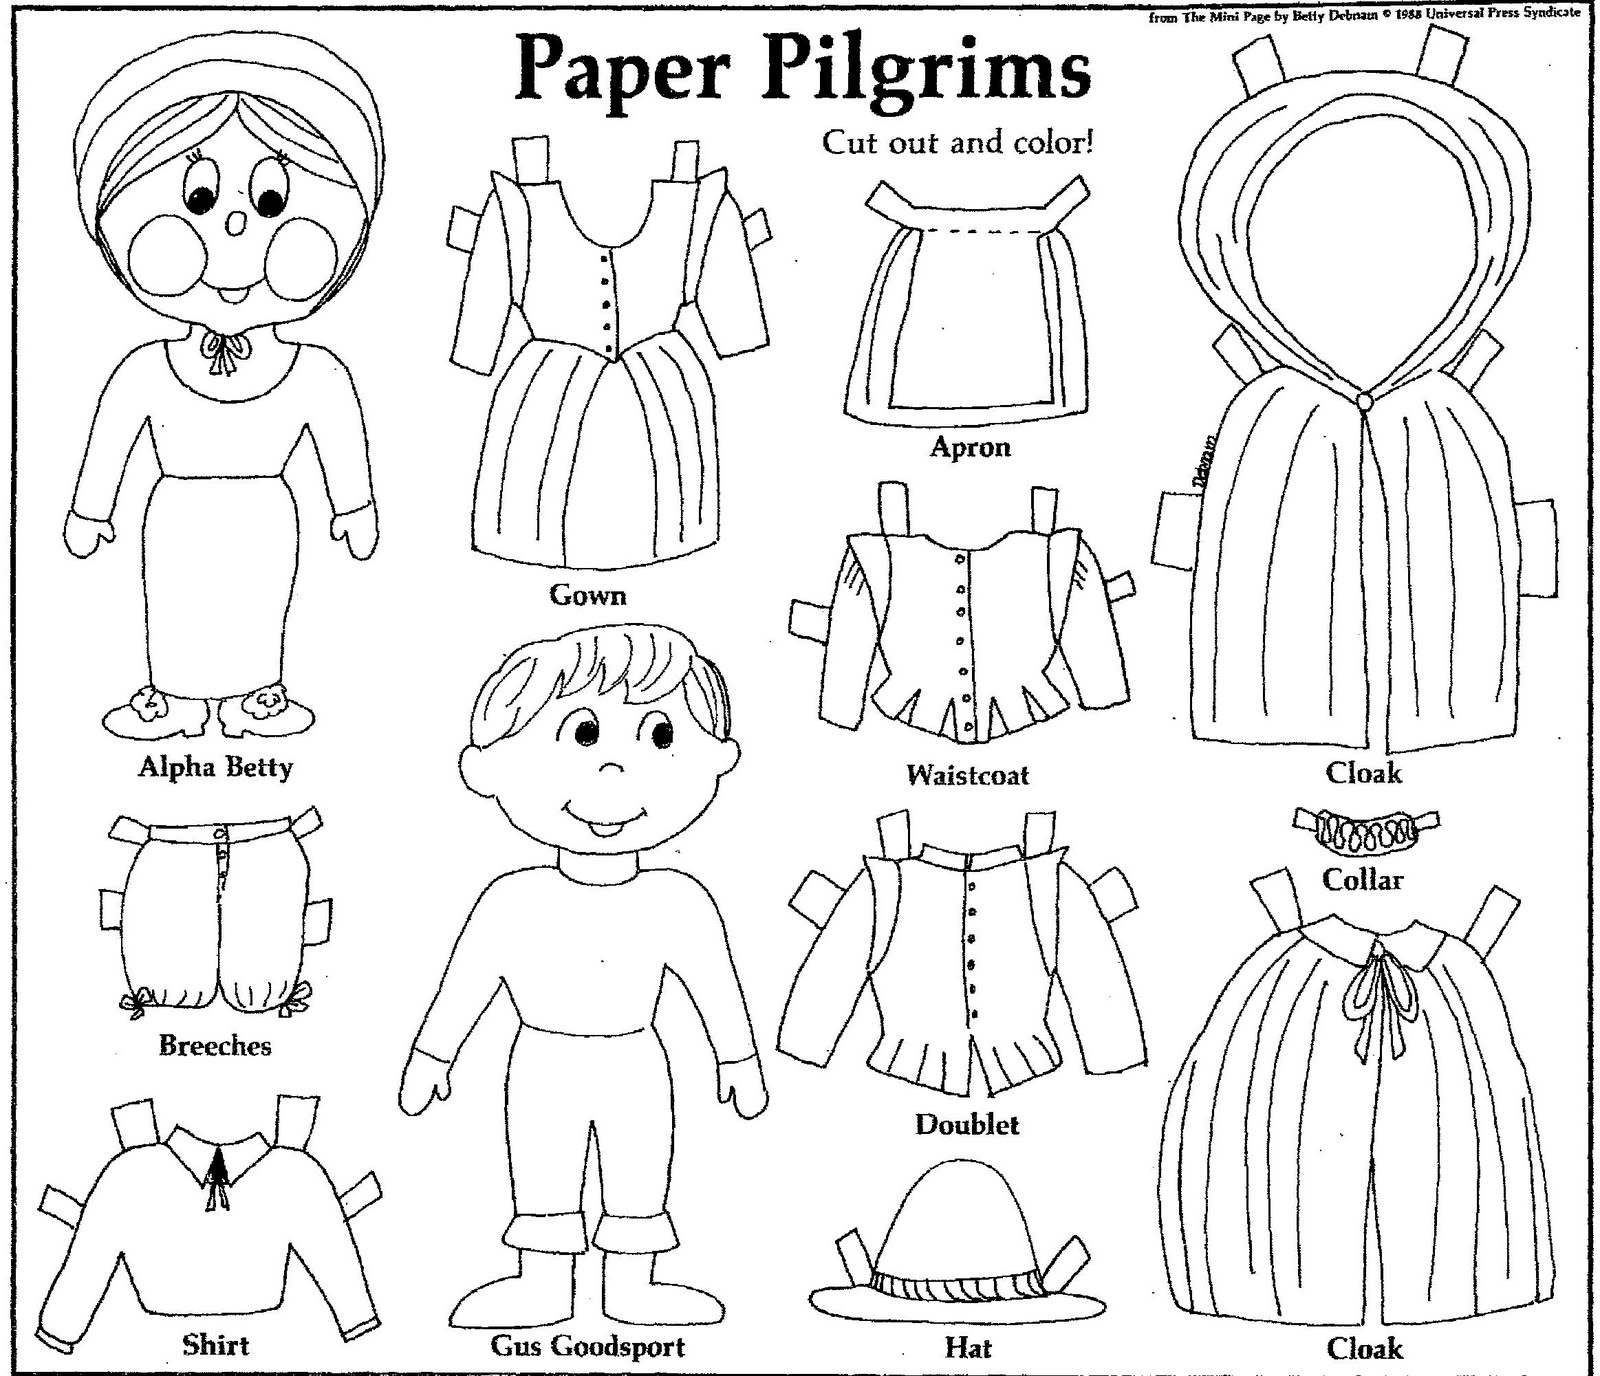 mostly paper dolls paper pilgrims to cut out and color 1988